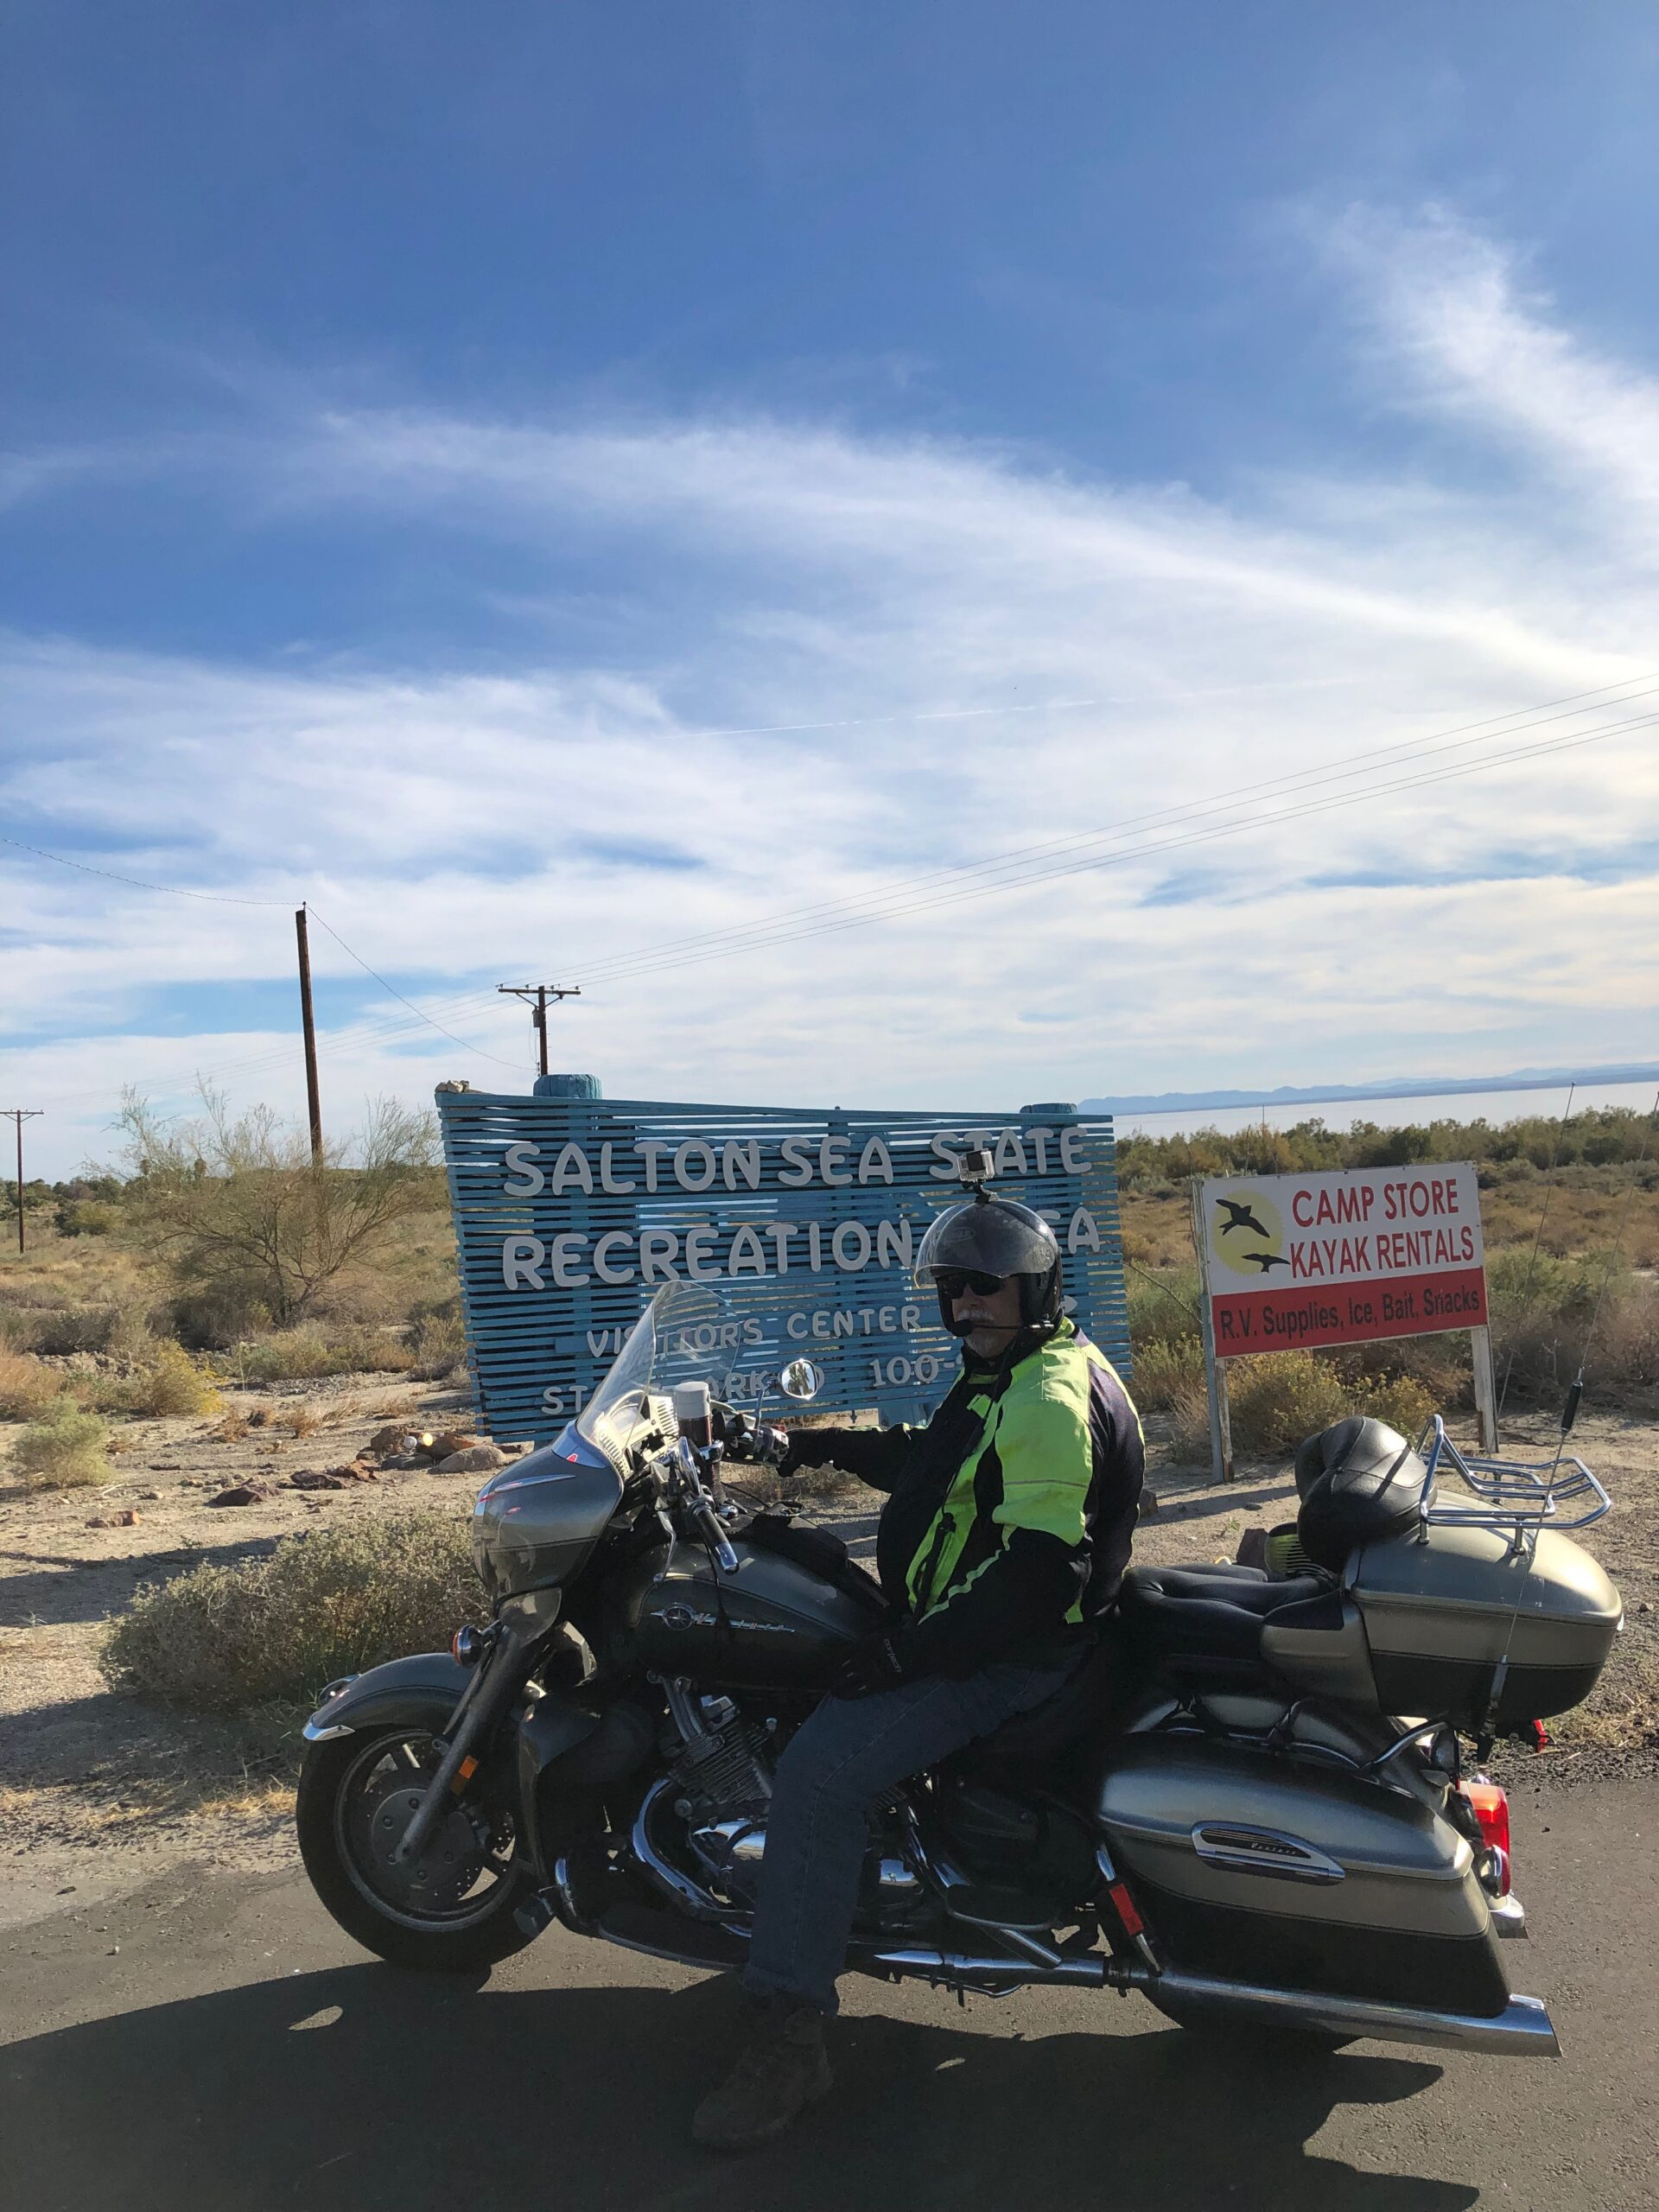 The Motorcycle At The Salton Sea